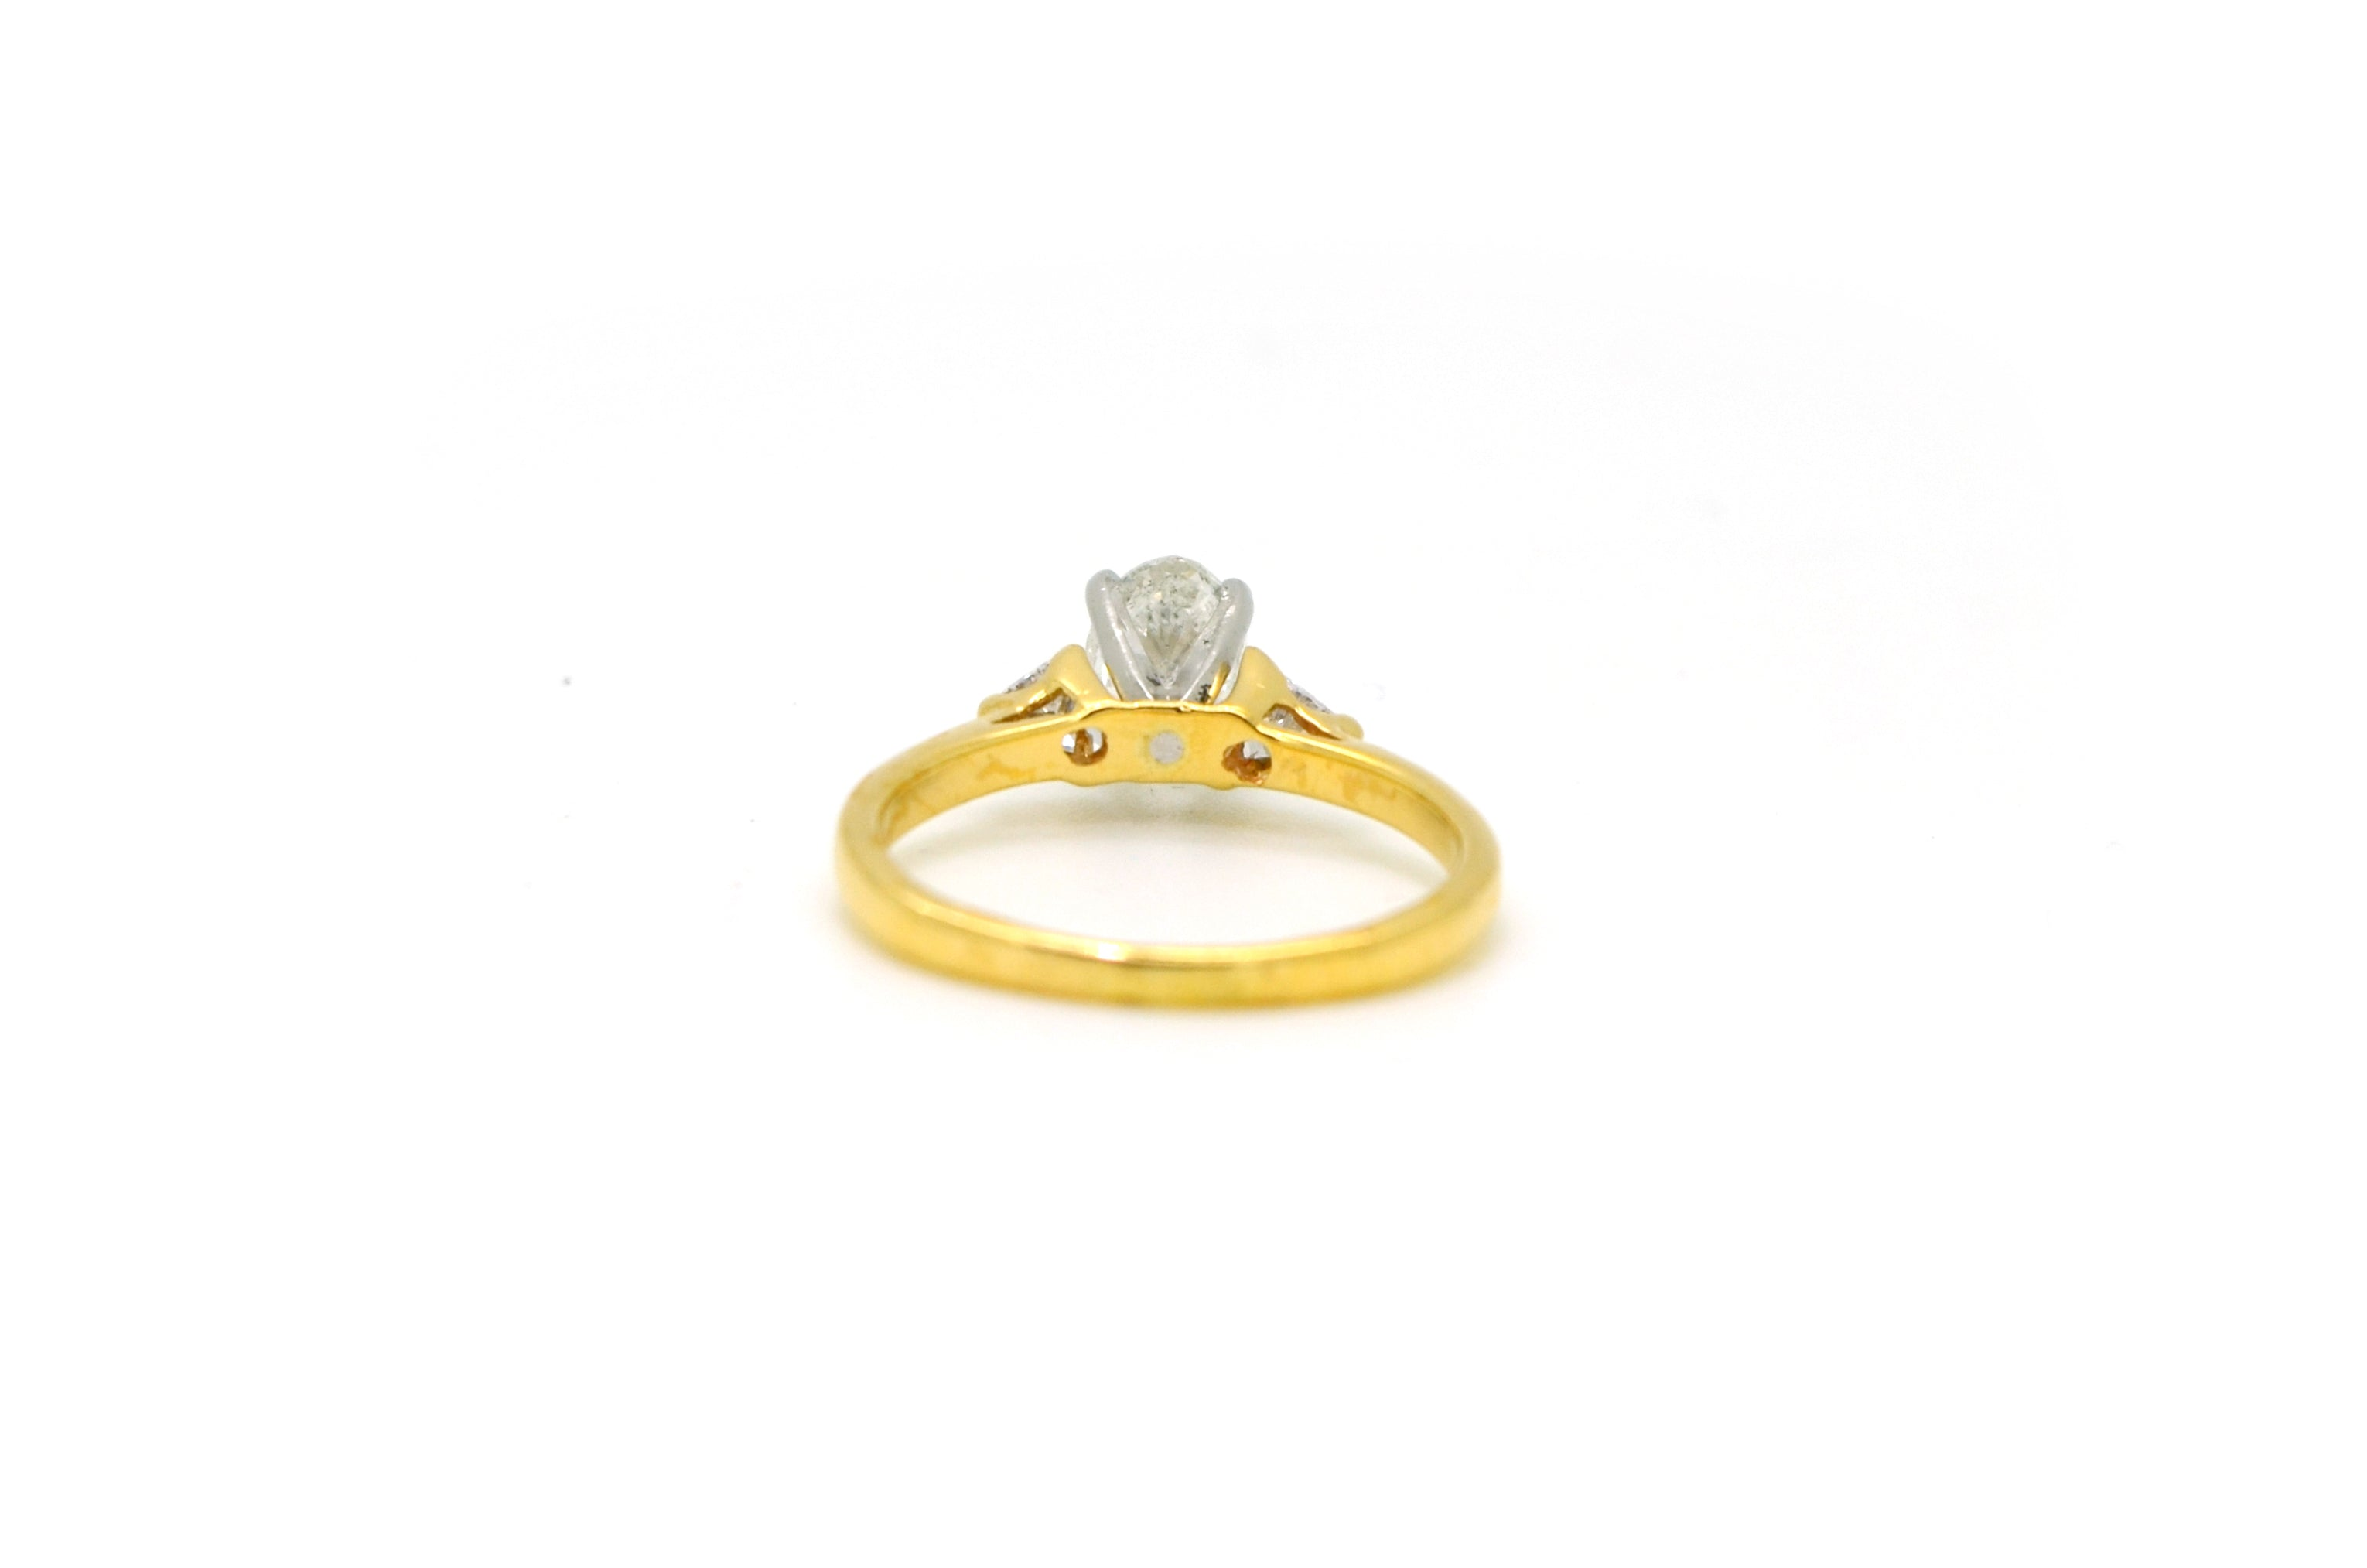 14k Yellow & White Gold Oval Diamond Engagement Ring - .80 ct. total - Size 5.75